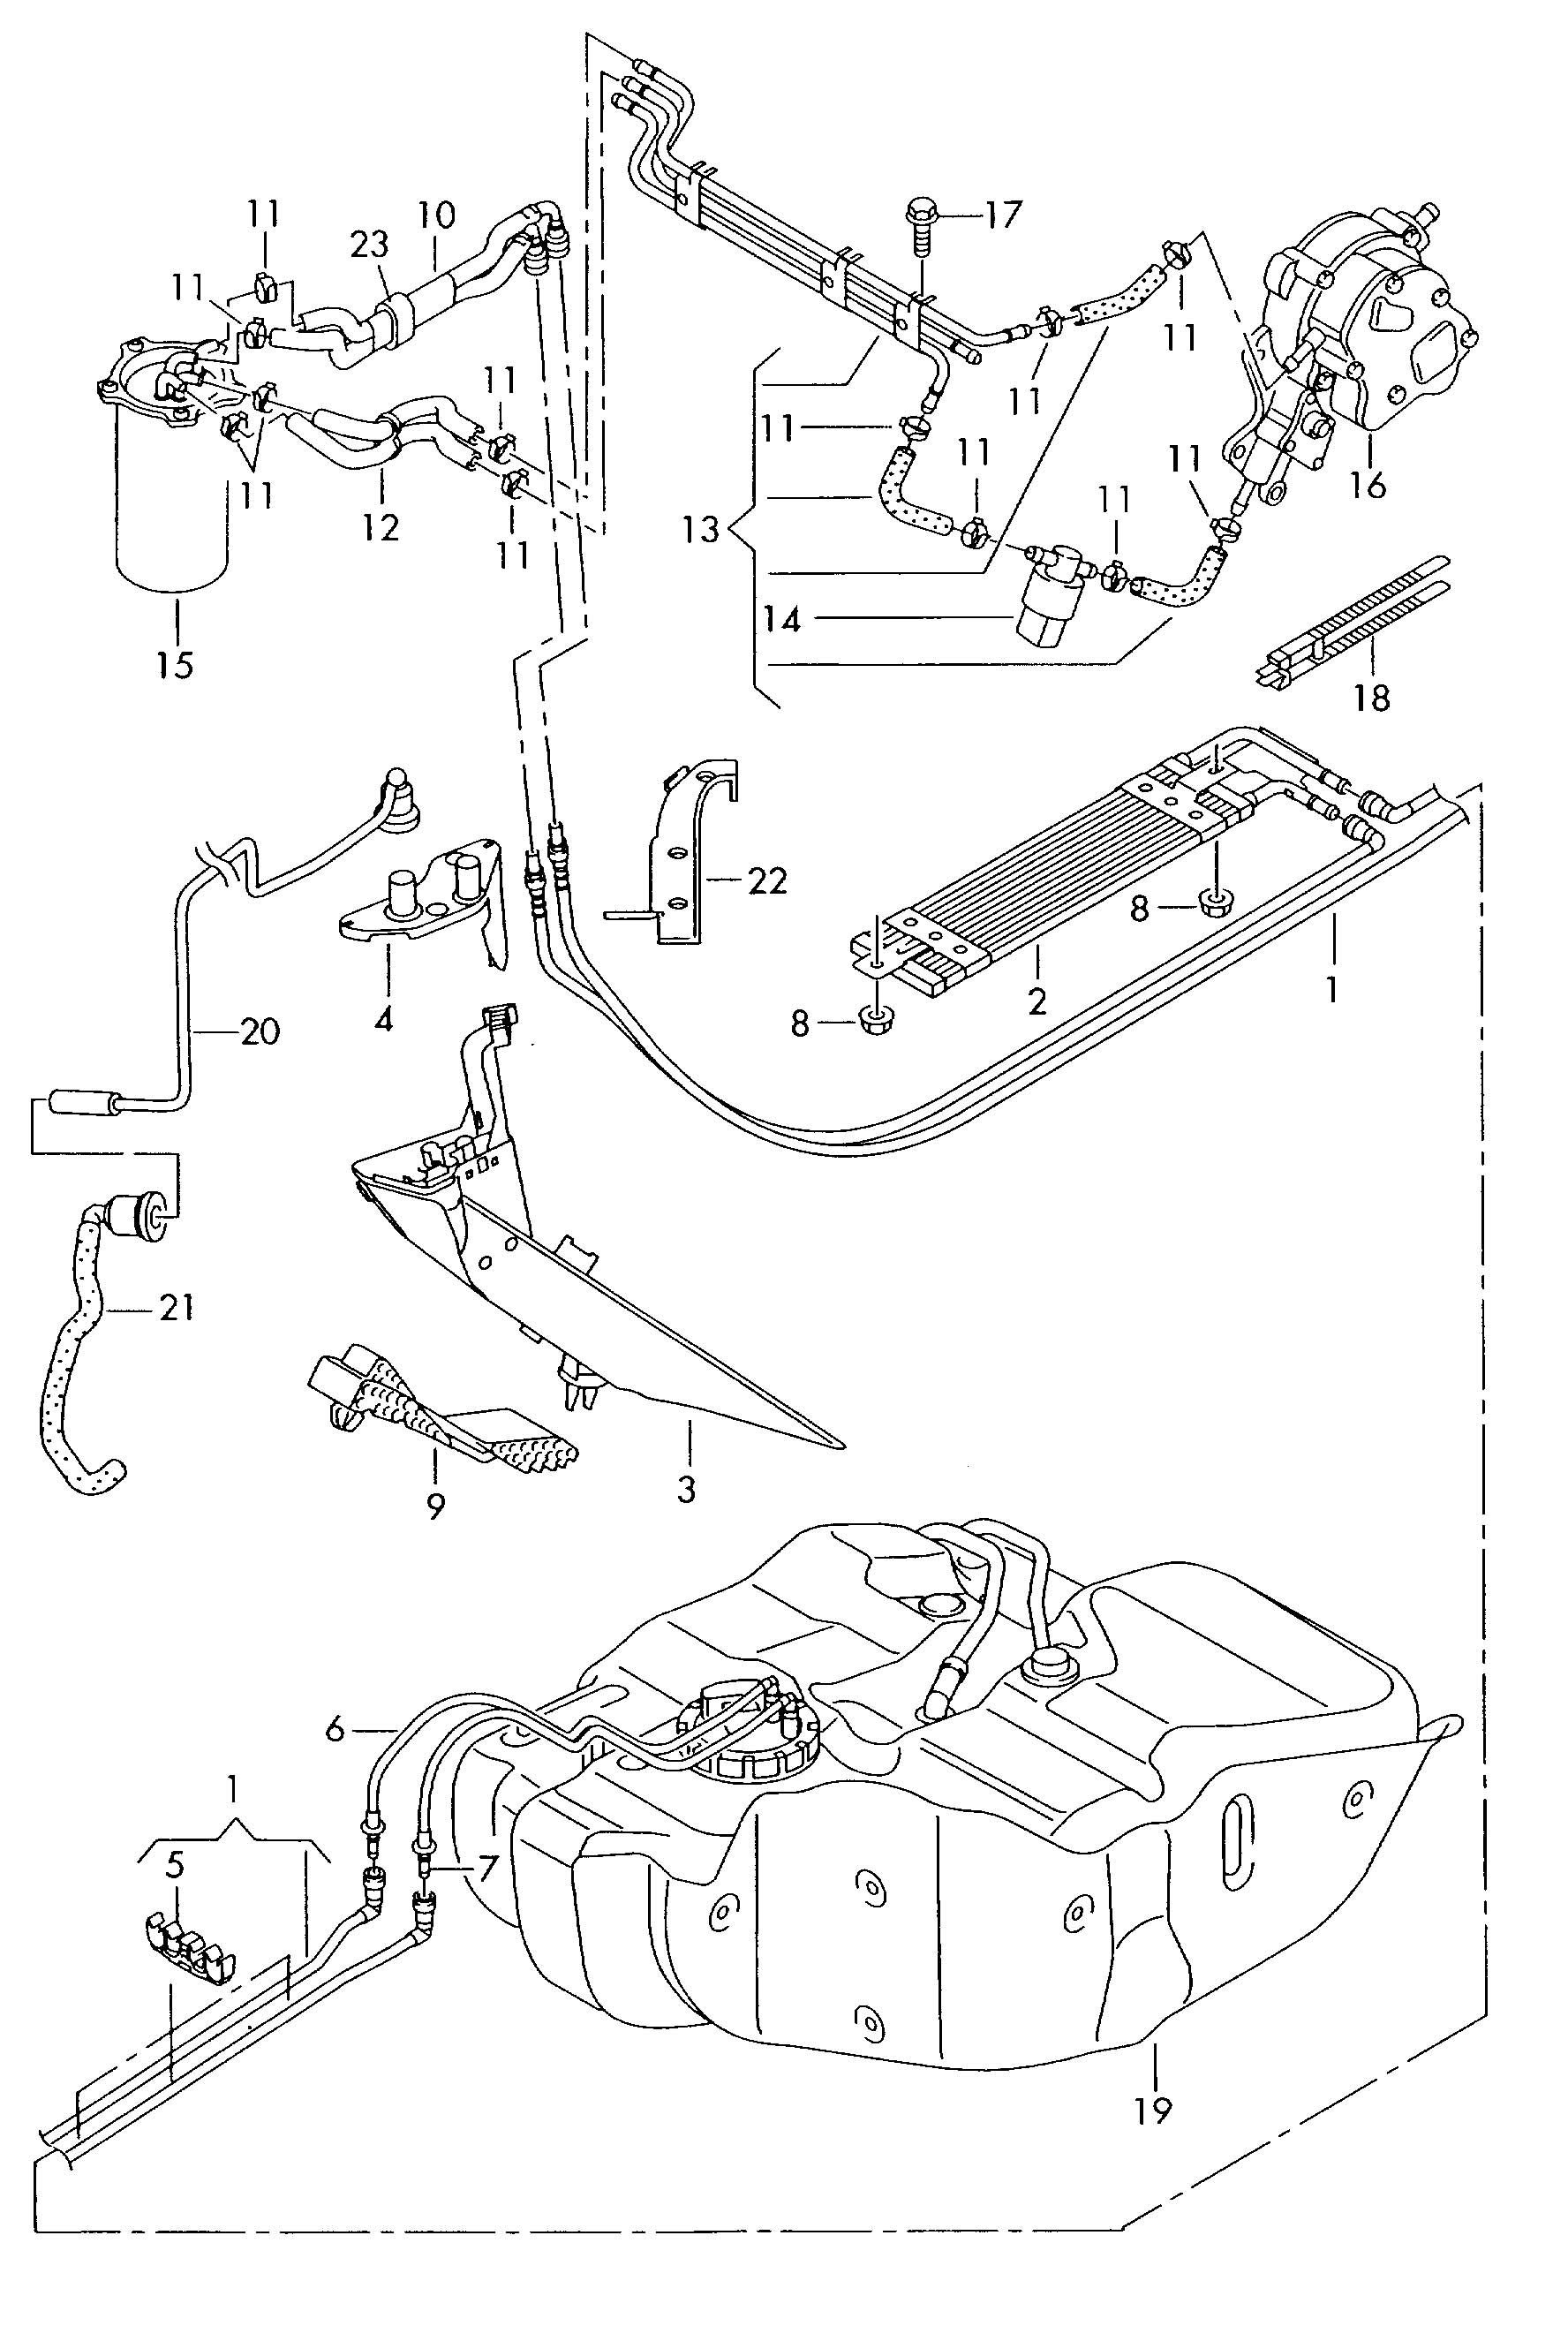 1984 buick grand national parts